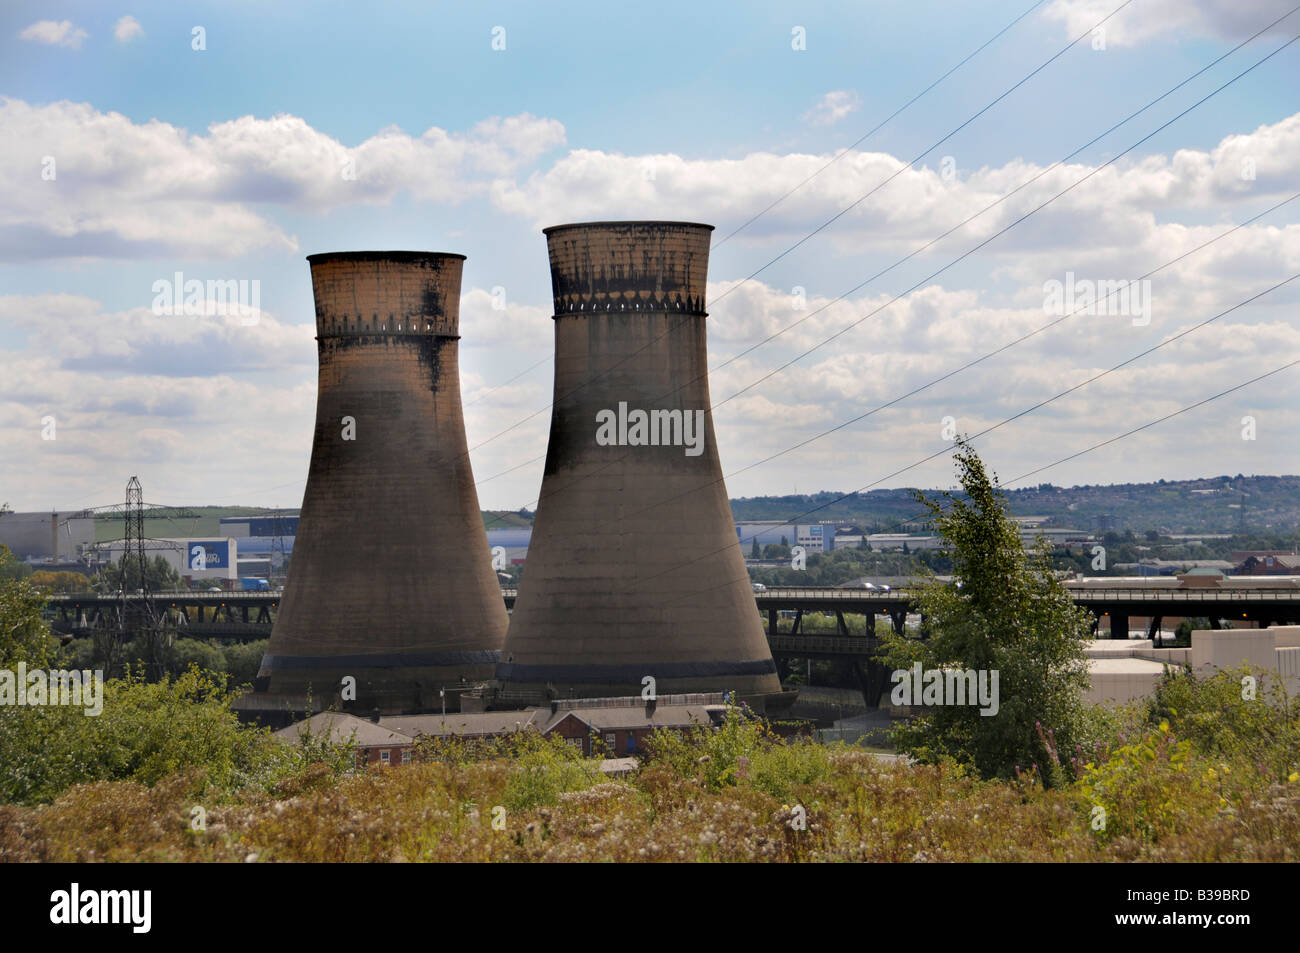 Tinsley Cooling Towers 12 hours before the Towers were demolished on   24 August 2008, Sheffield, England, UK - Stock Image